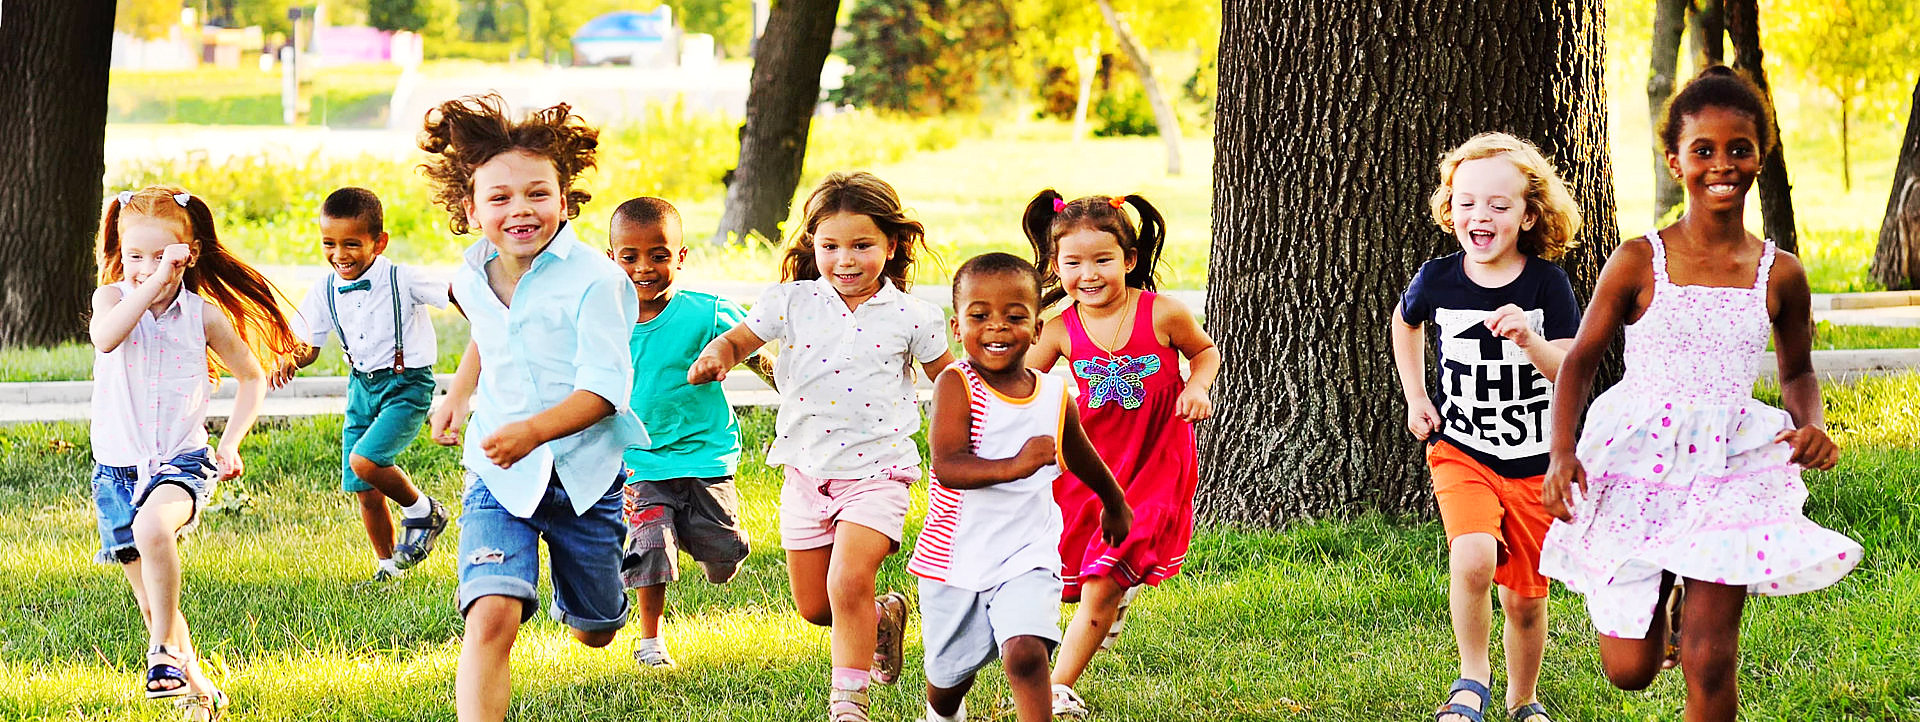 group of children are running